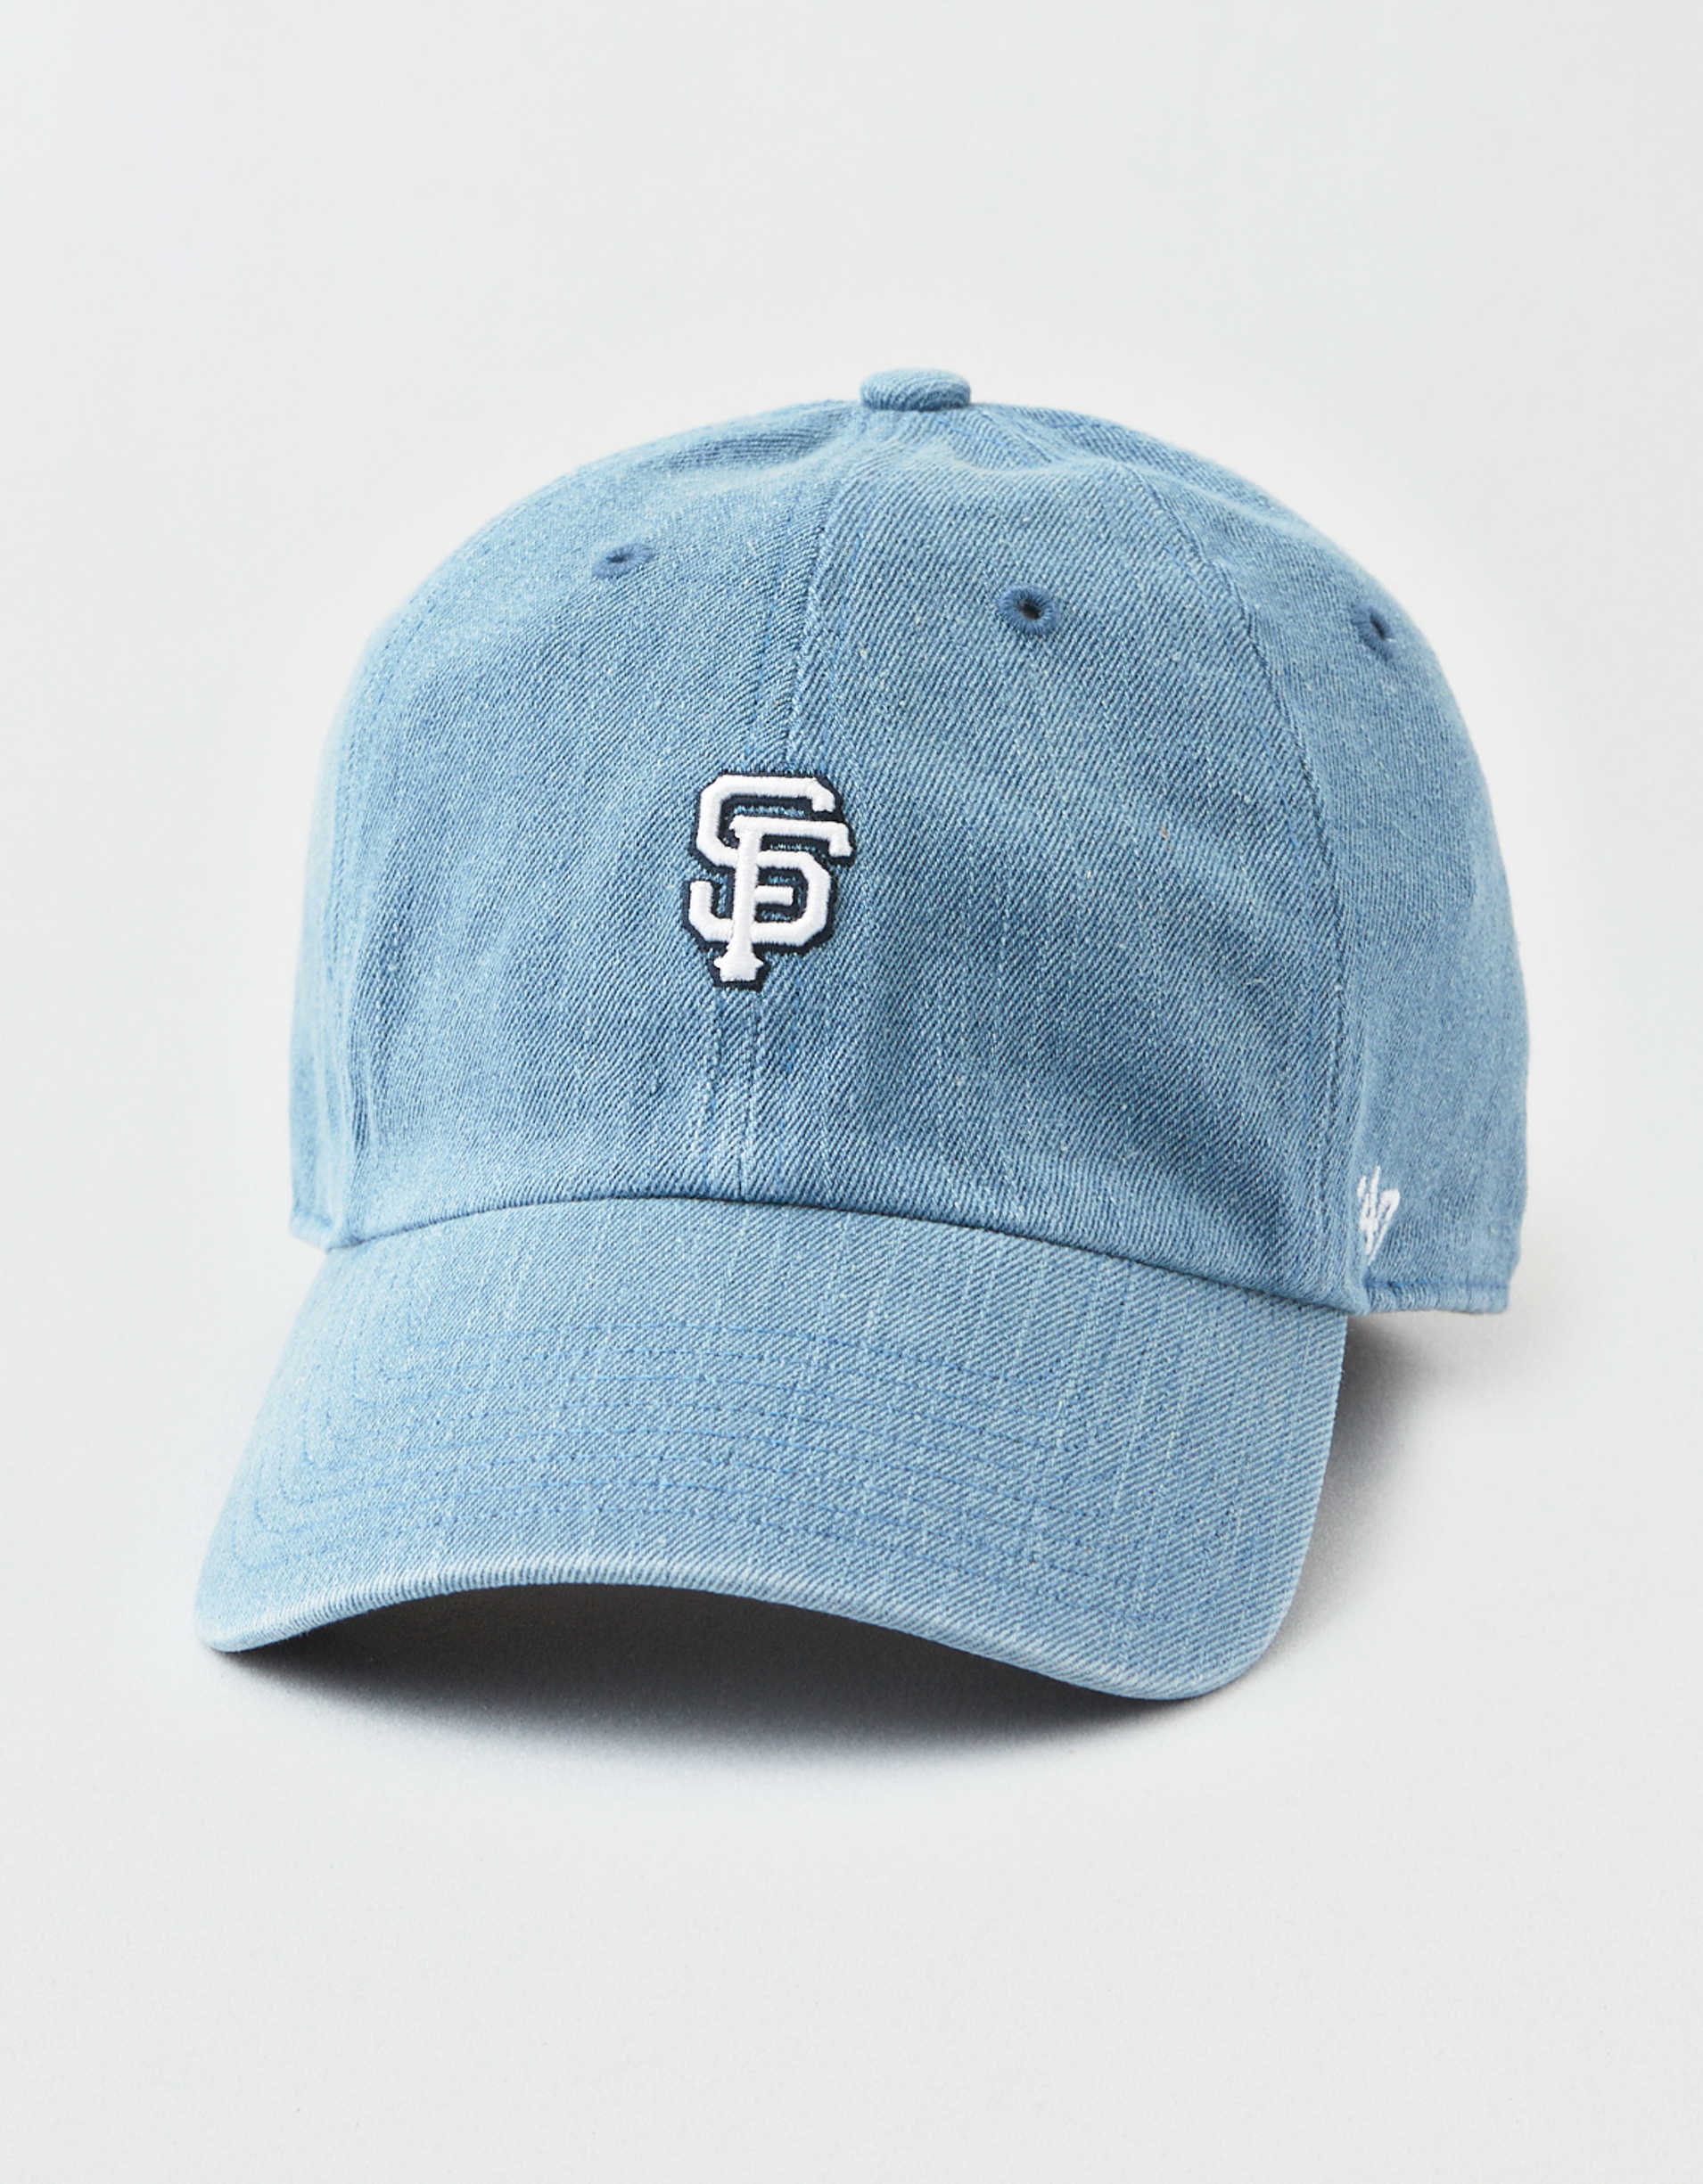 '47 Brand San Francisco Giants Stretch Denim Baseball Hat